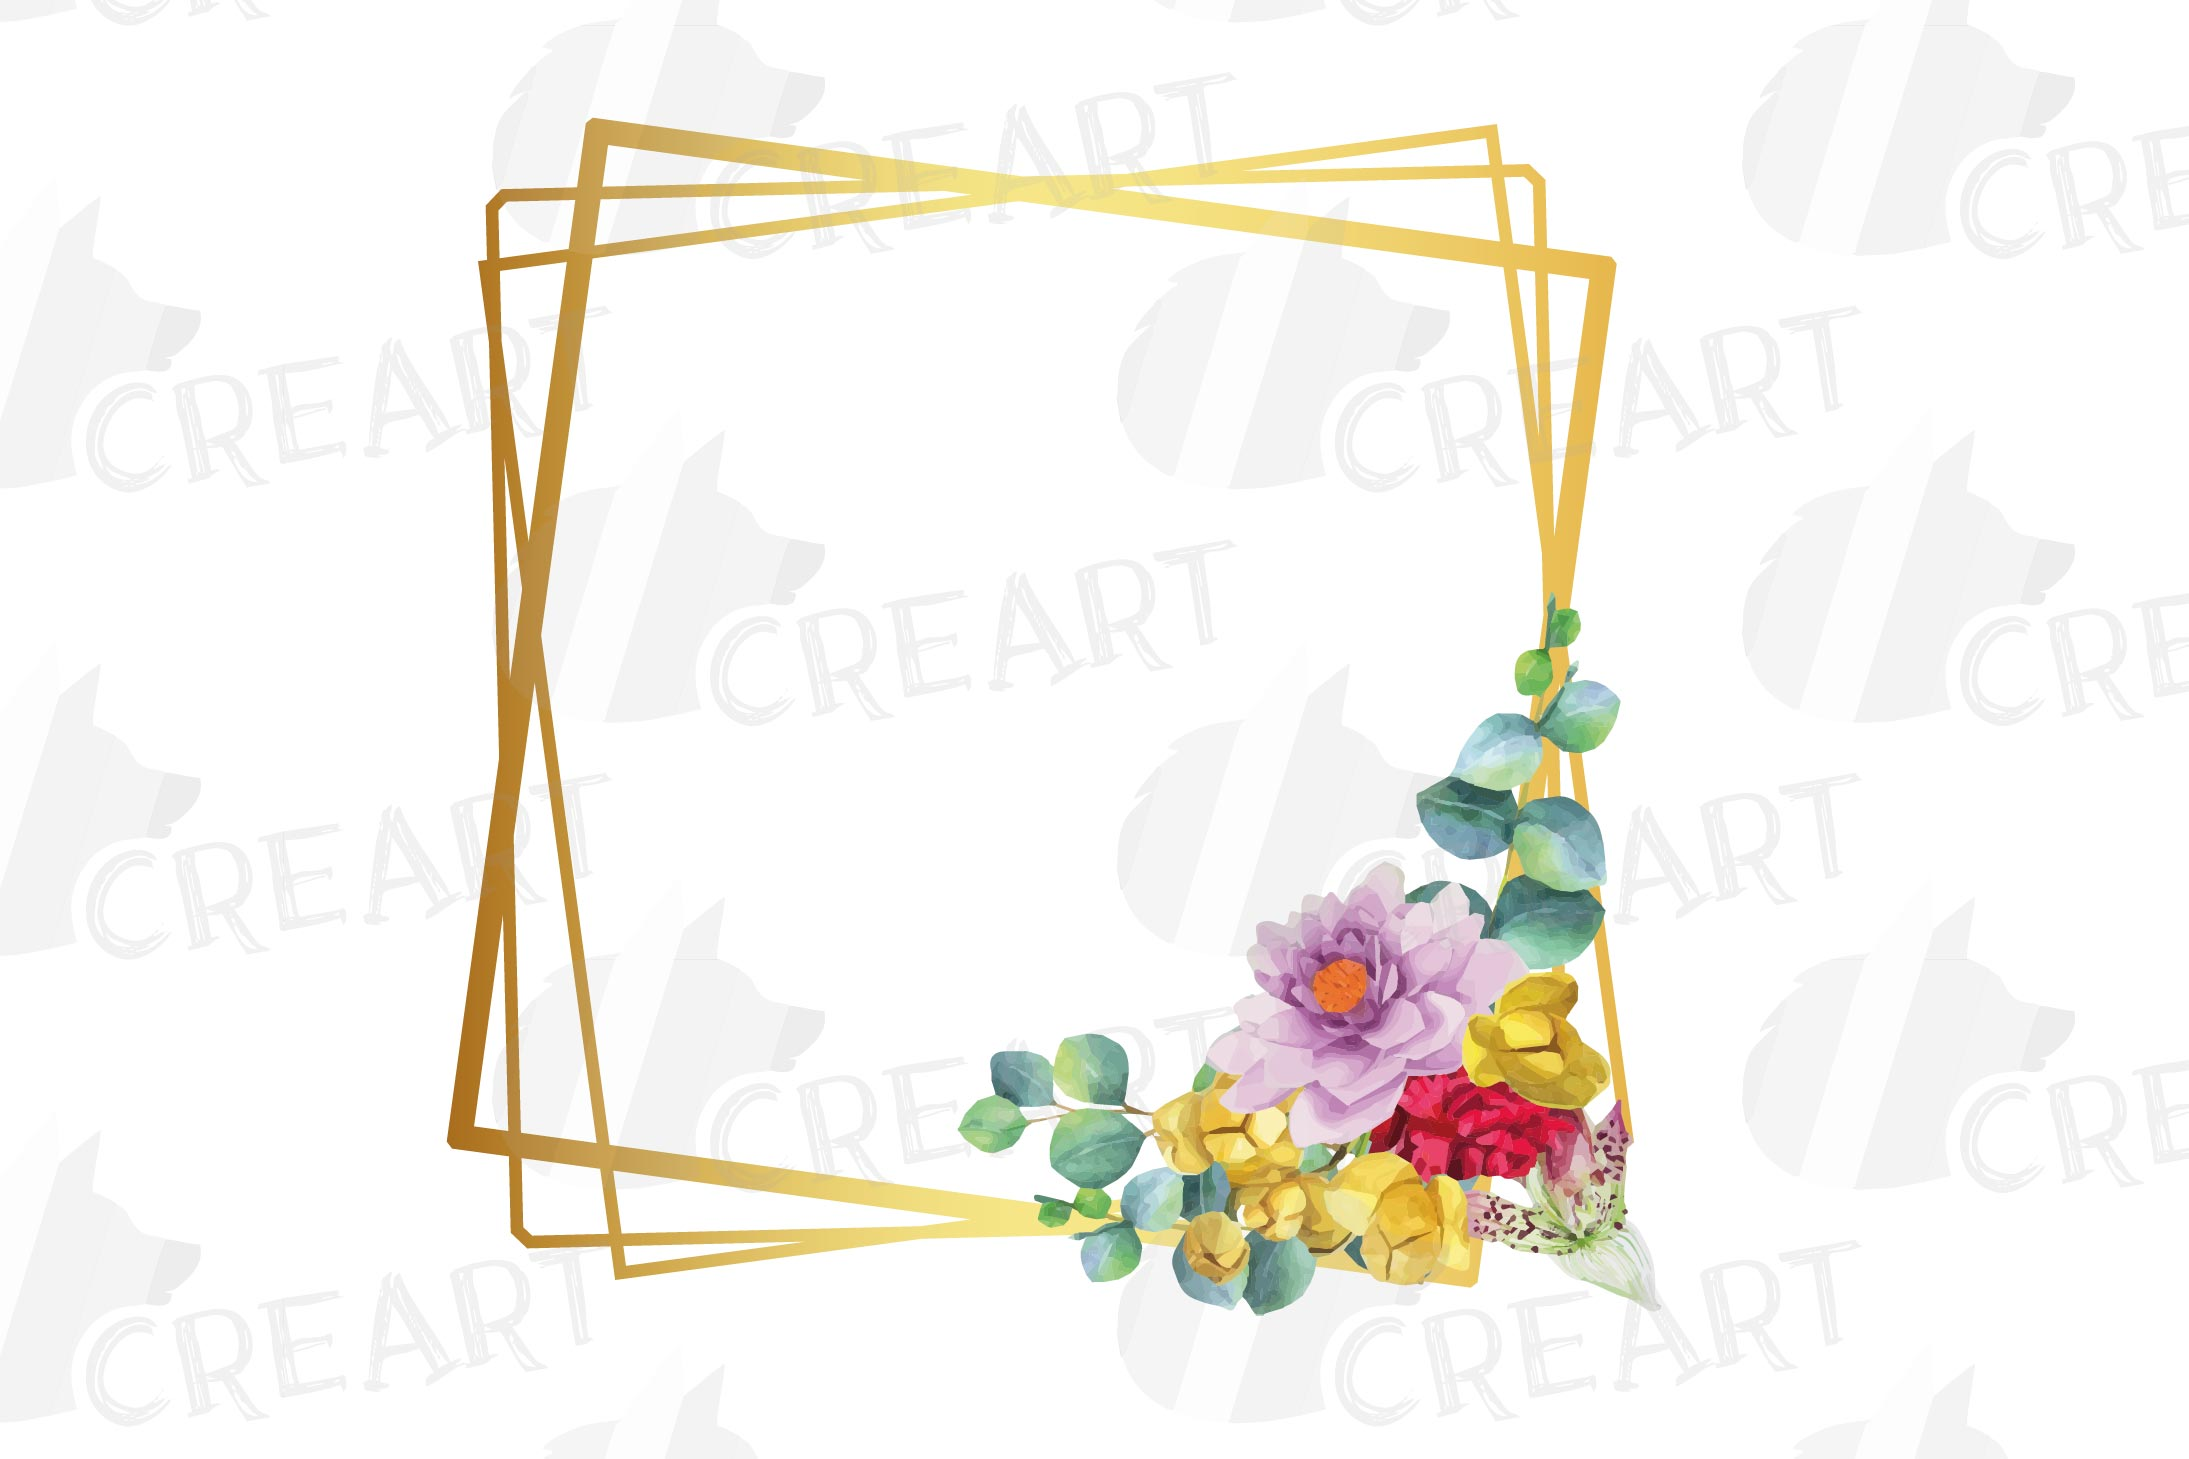 Watercolor floral golden frames and borders clip art pack example image 5